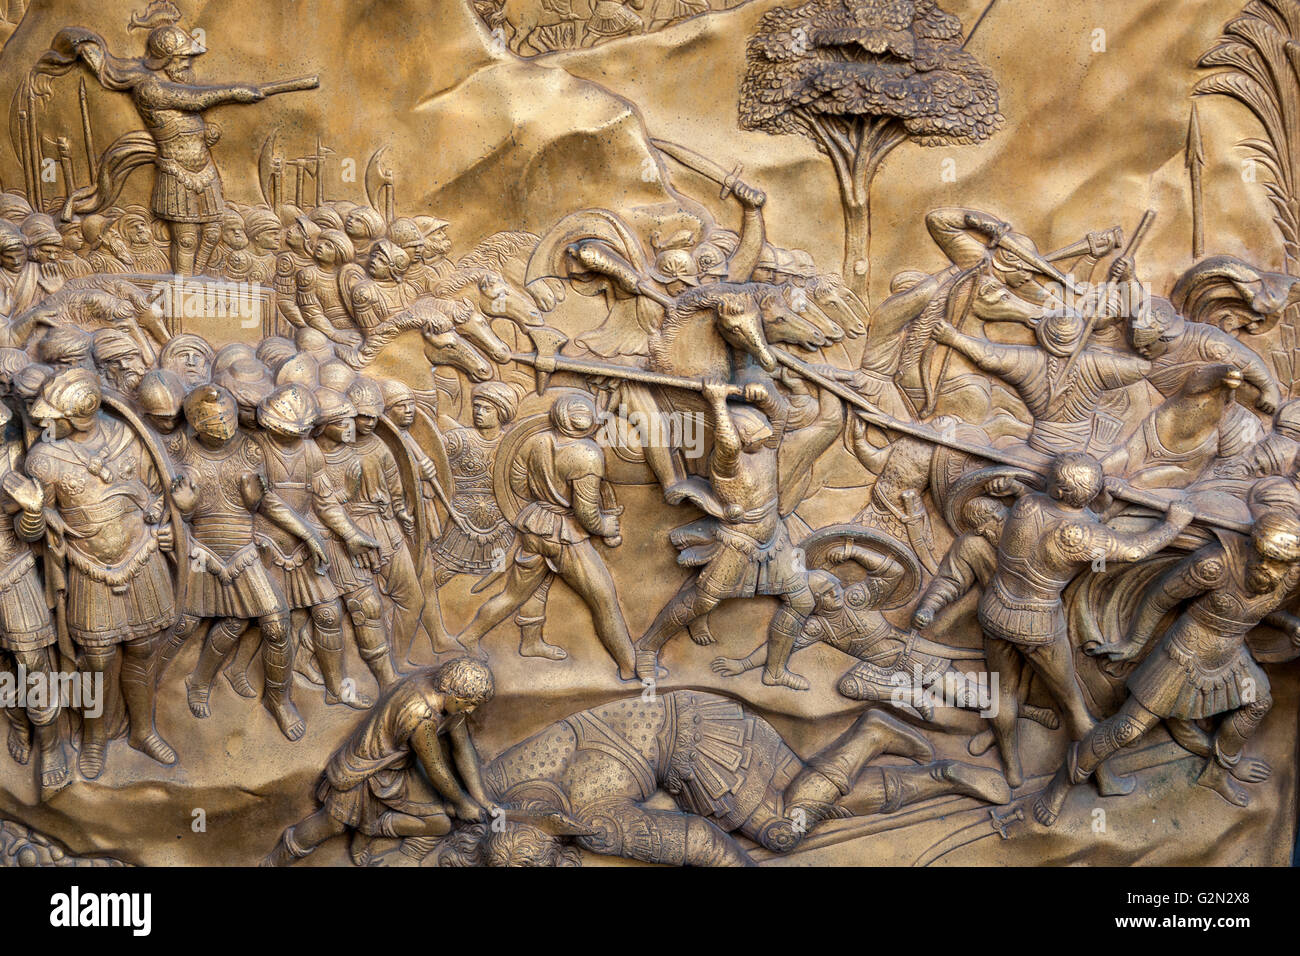 florence baptistery david and goliath bronze panel east doors